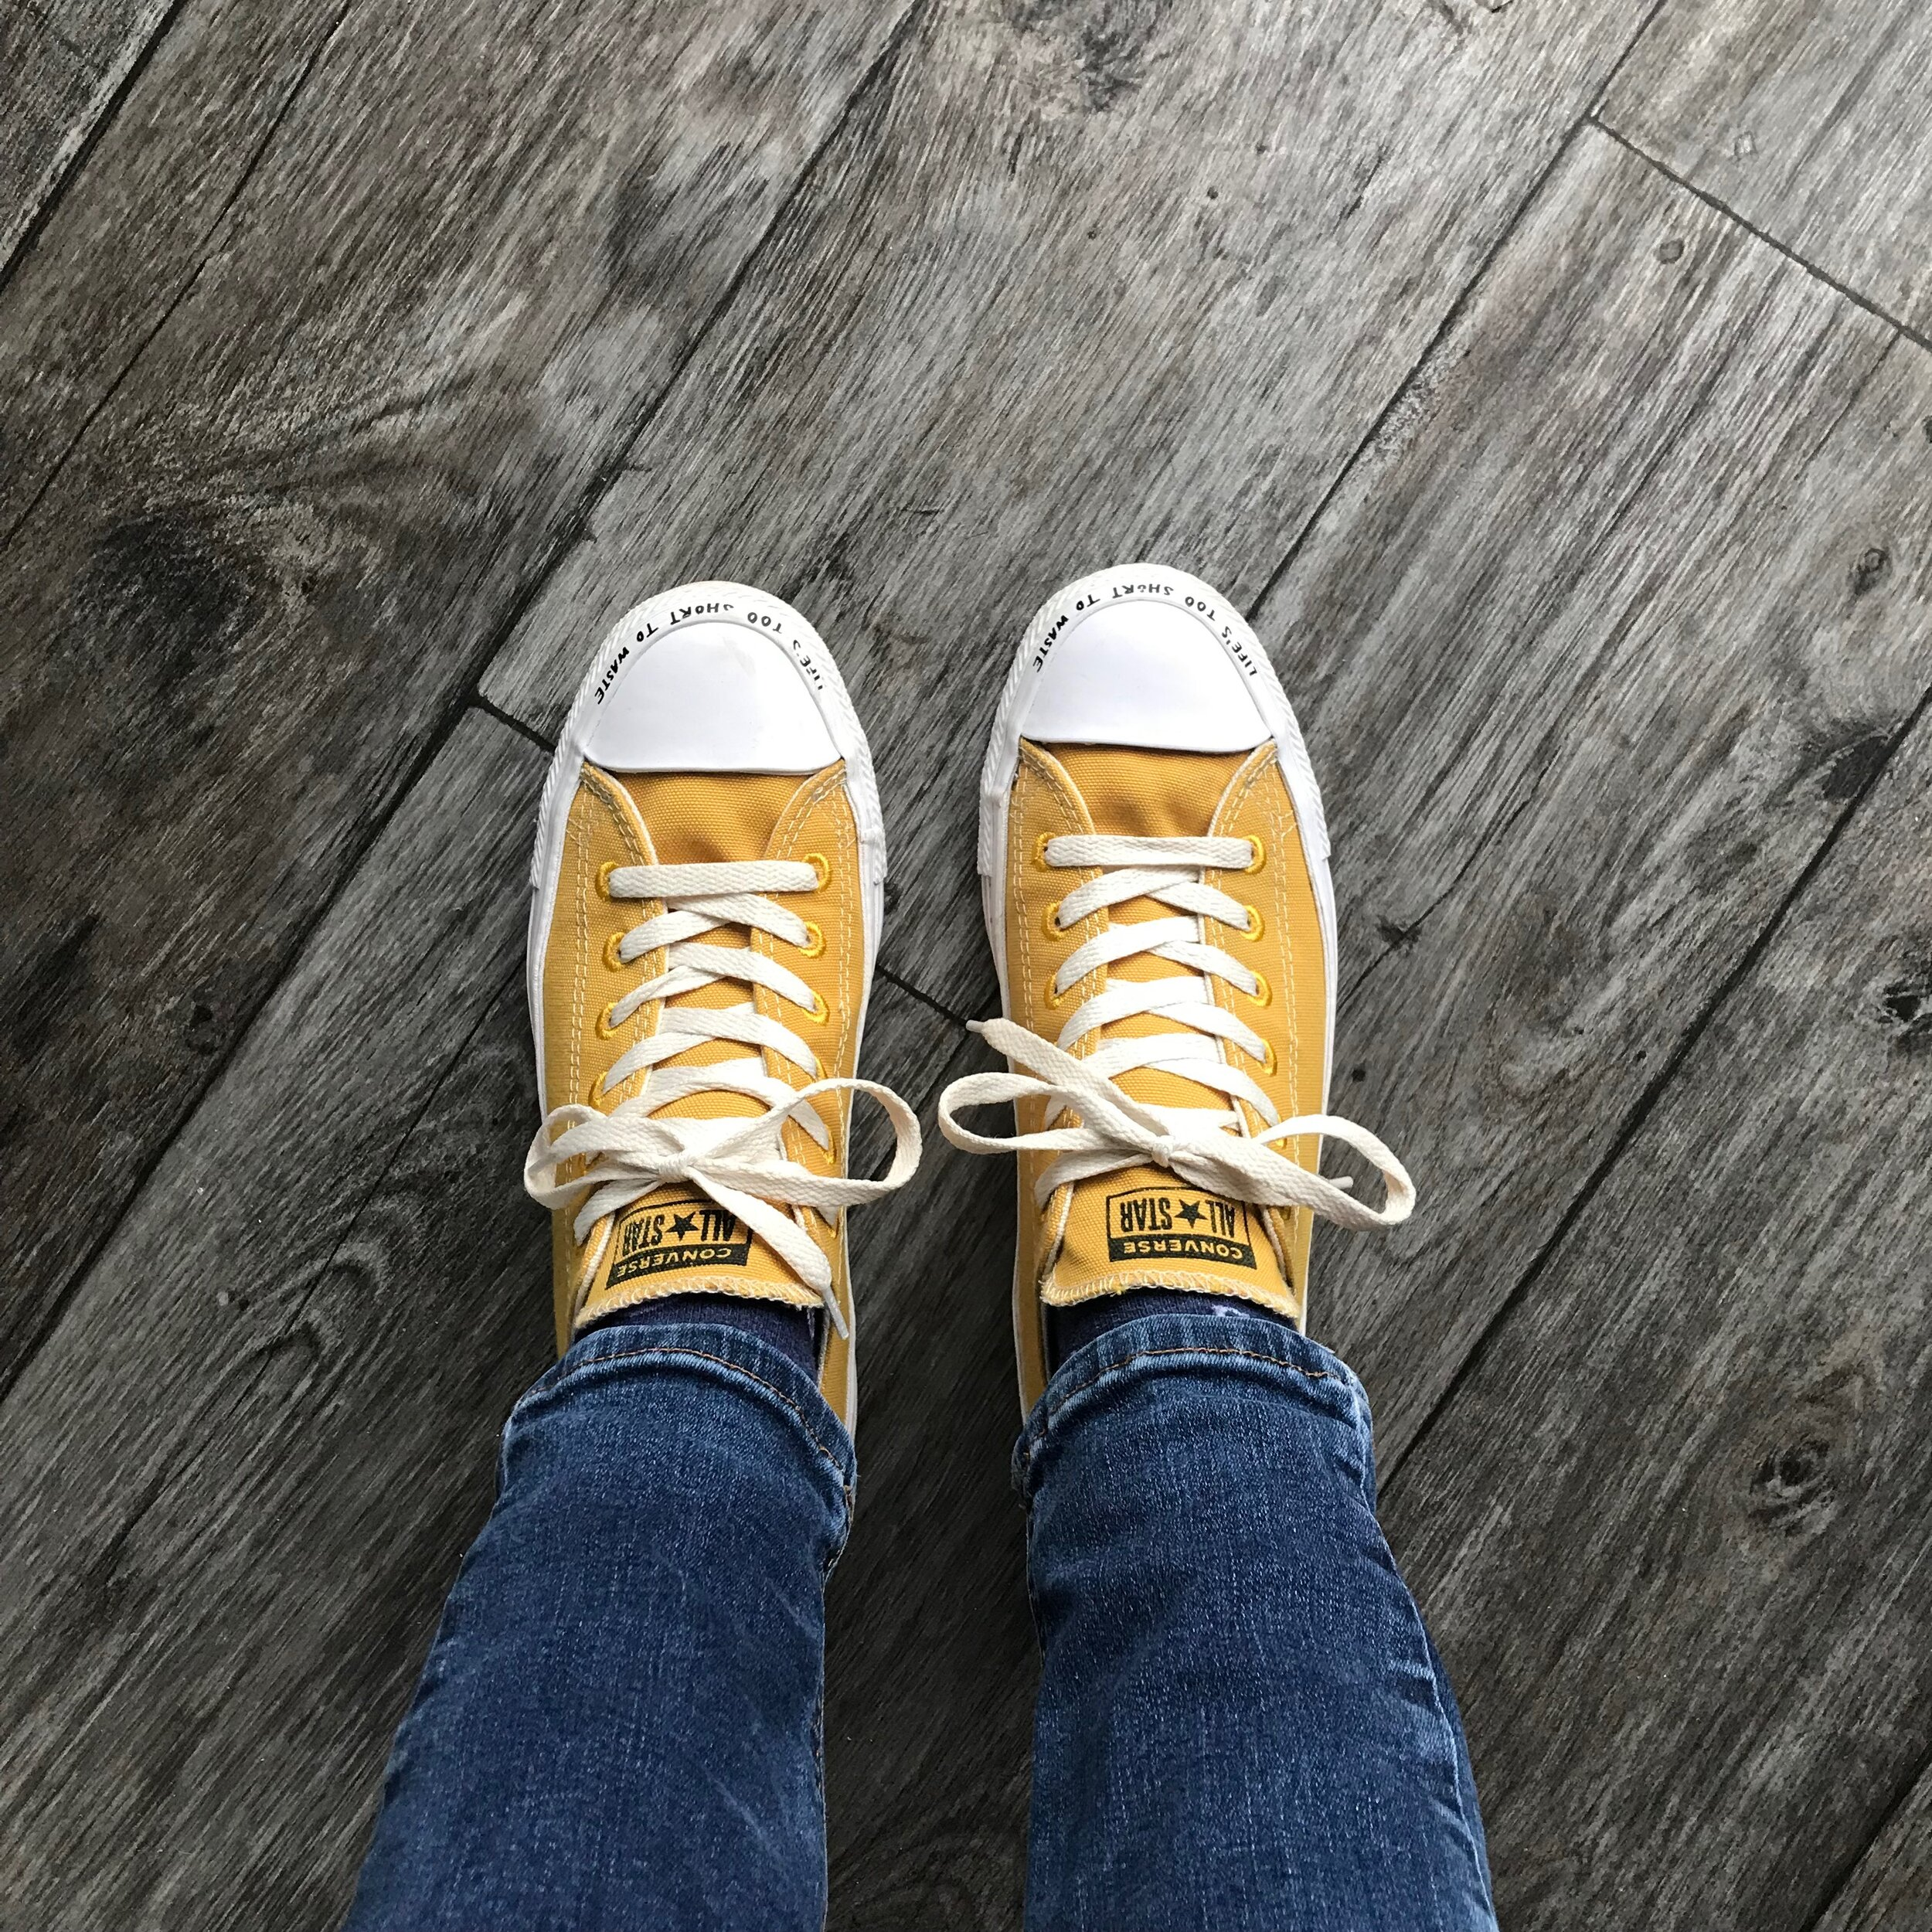 """My converse!! Ft """"Life's too short to waste"""". Photo: Jennifer Thomson"""